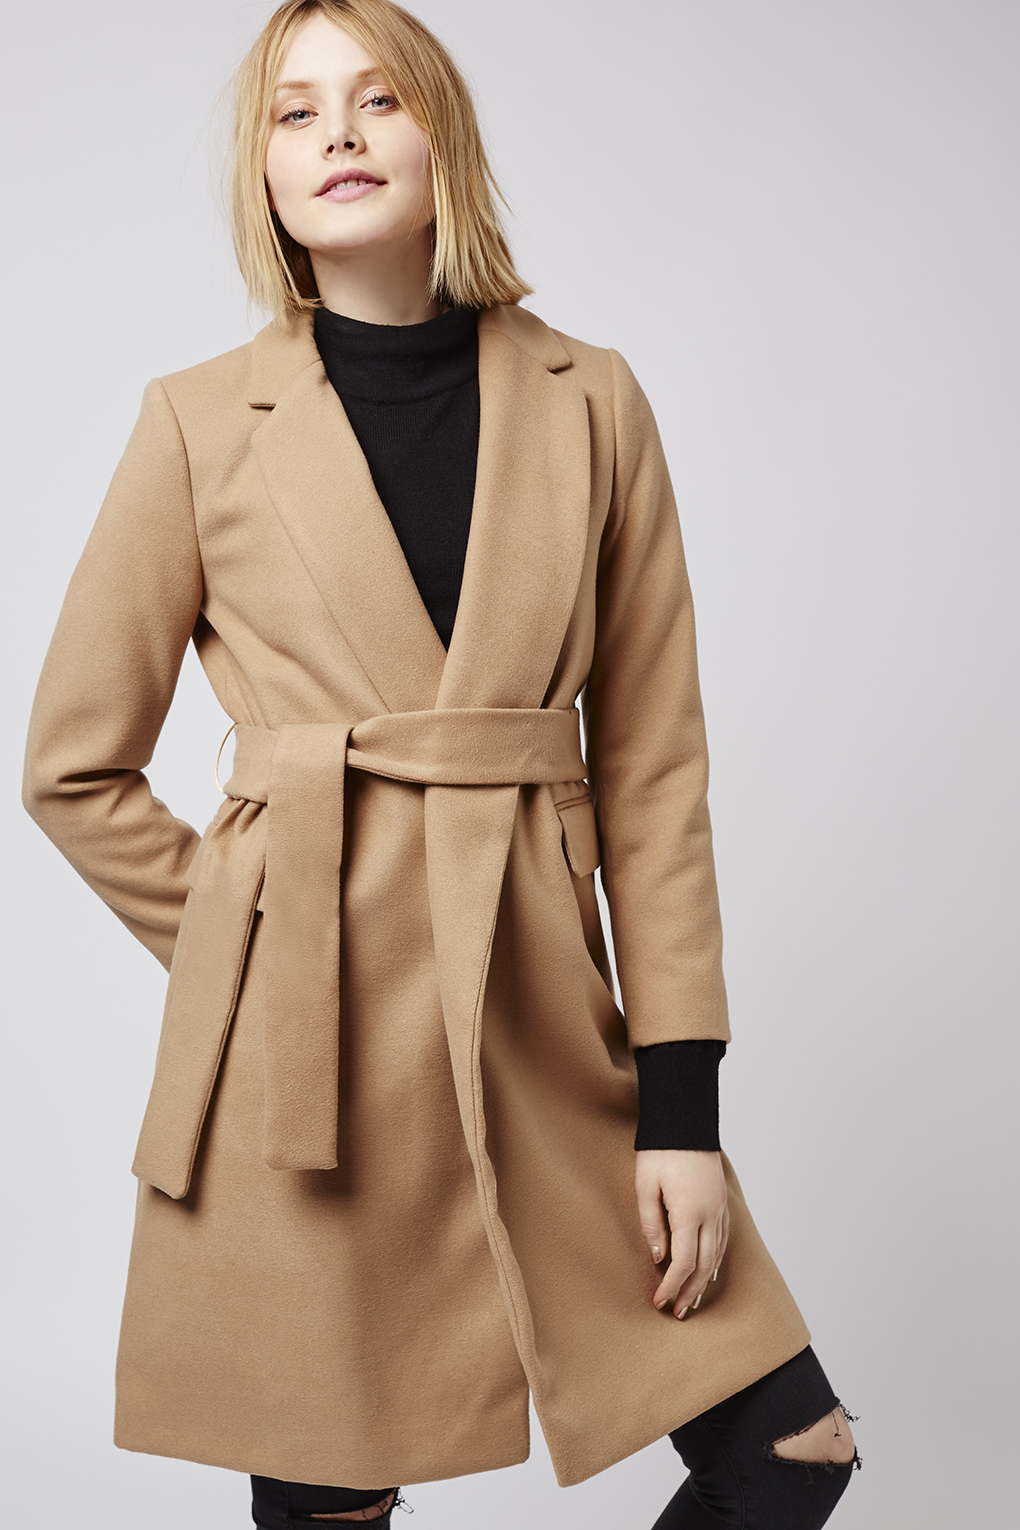 Topshop Petite Belted Coat in Natural | Lyst